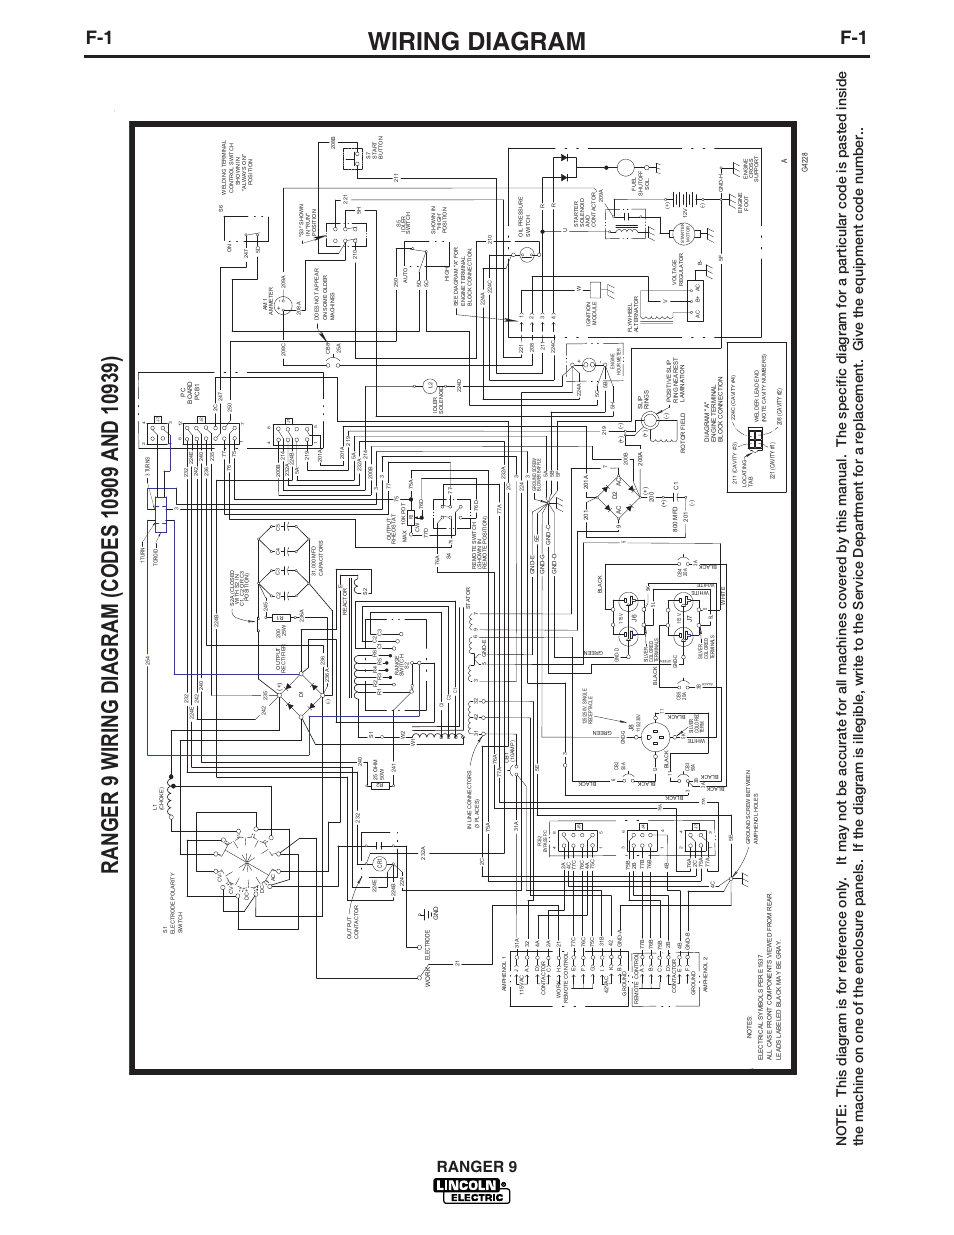 lincoln sa 250 welder wiring diagram